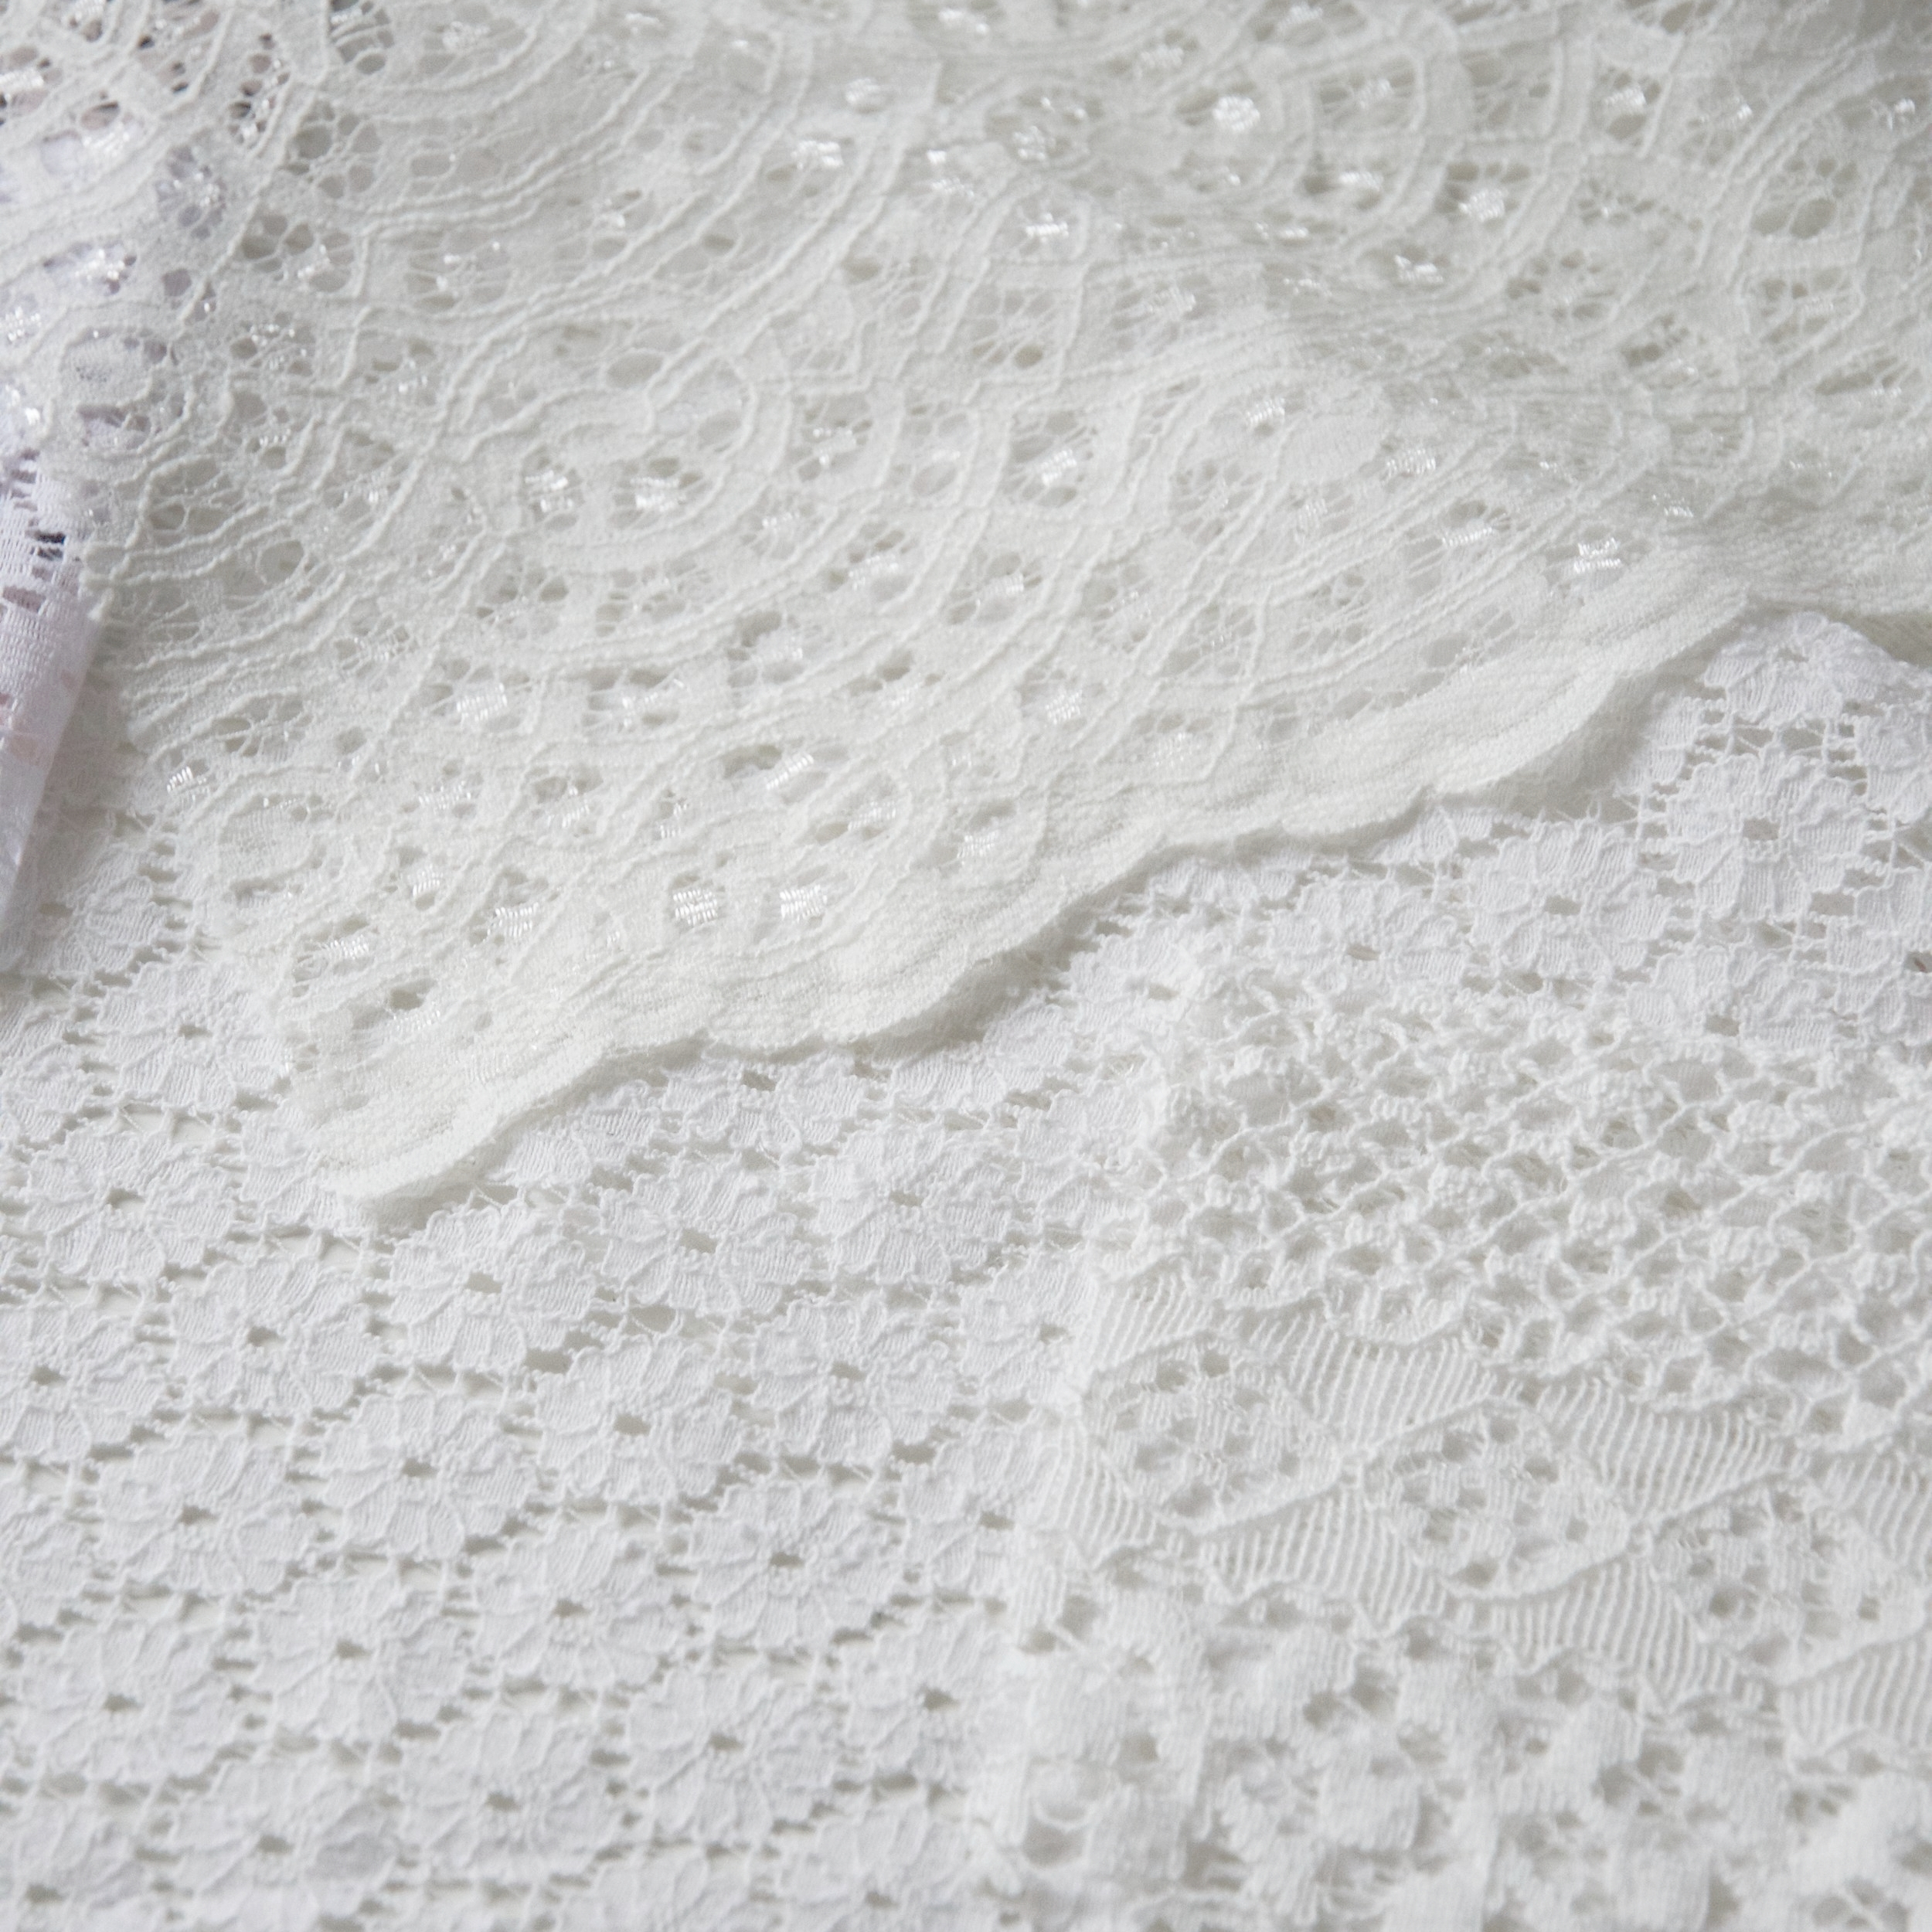 Geometric lace designs